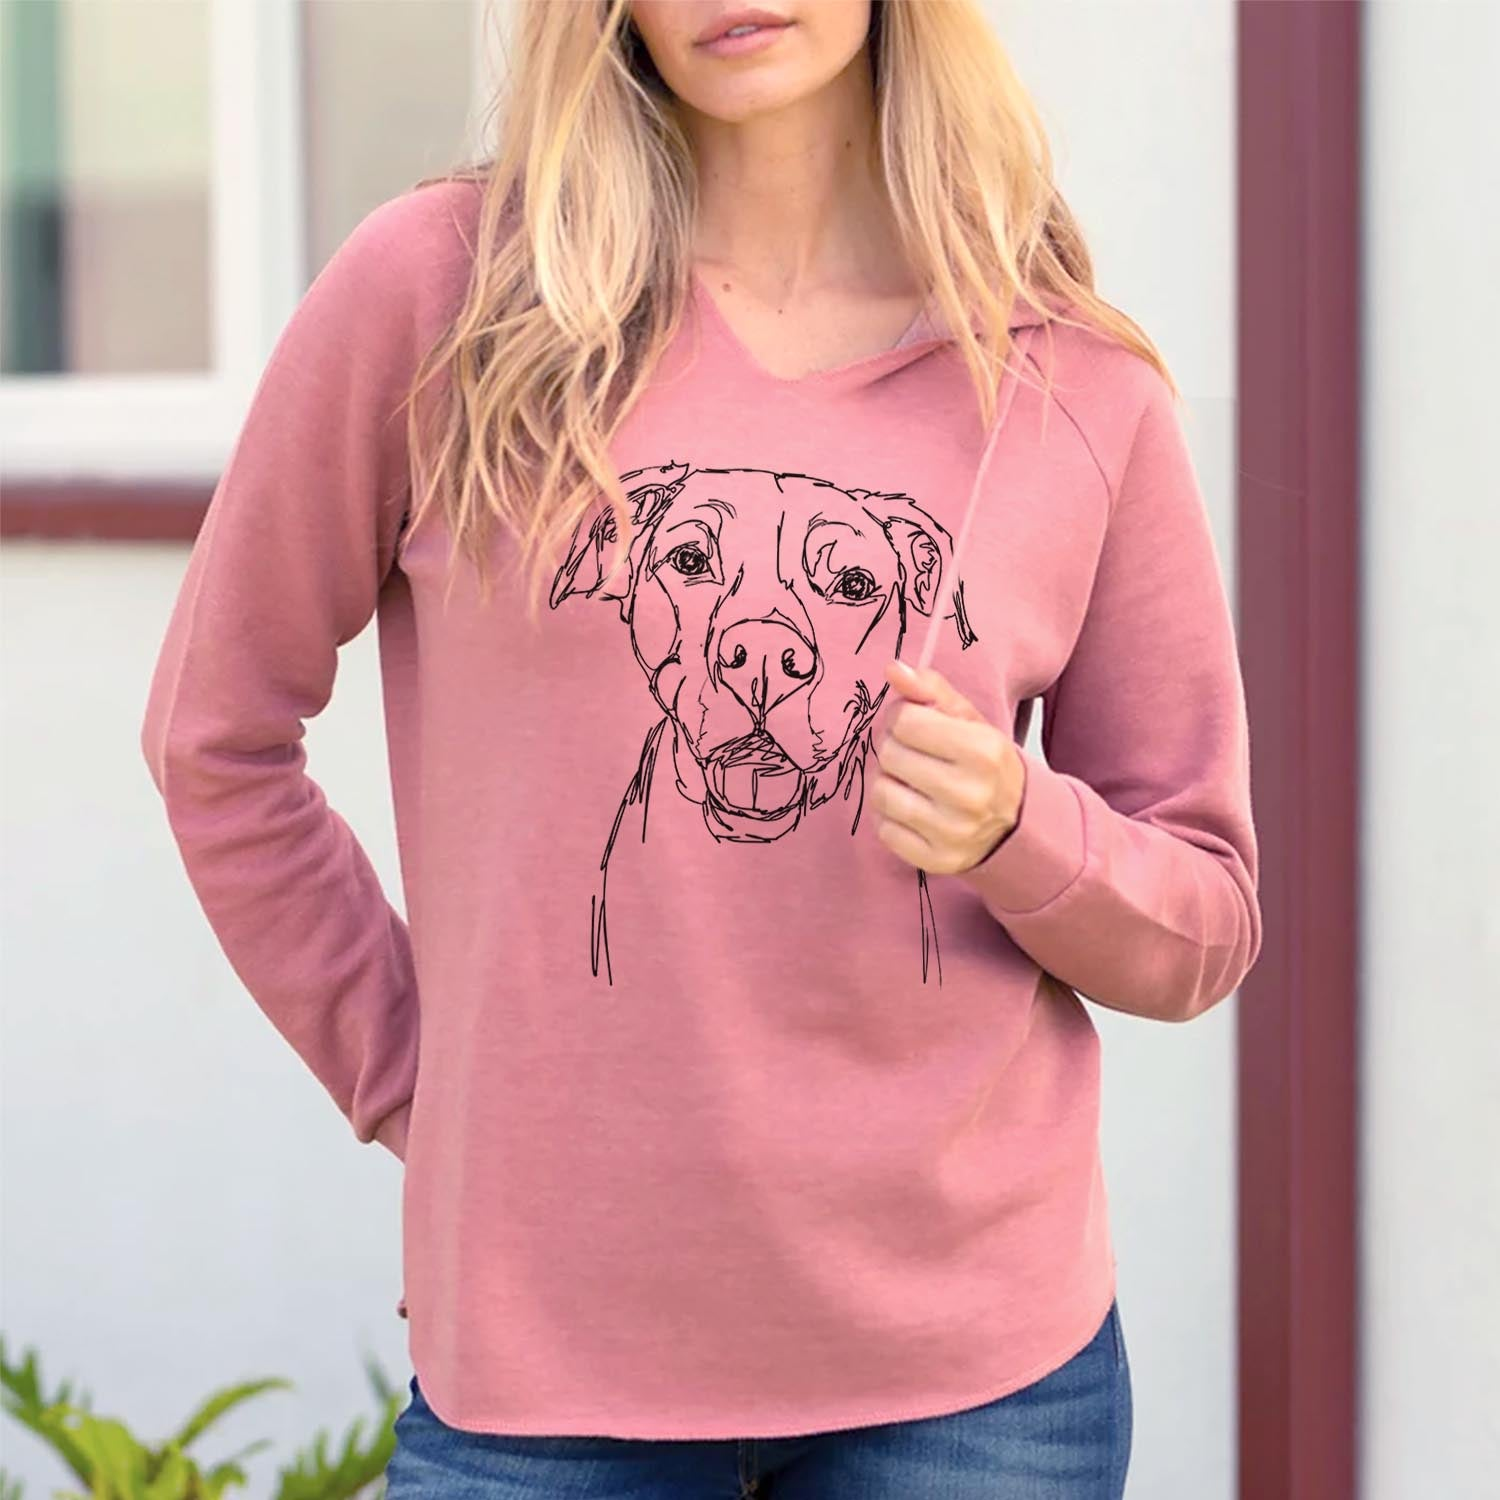 Doodled Pitbull Mix - Cali Wave Hooded Sweatshirt